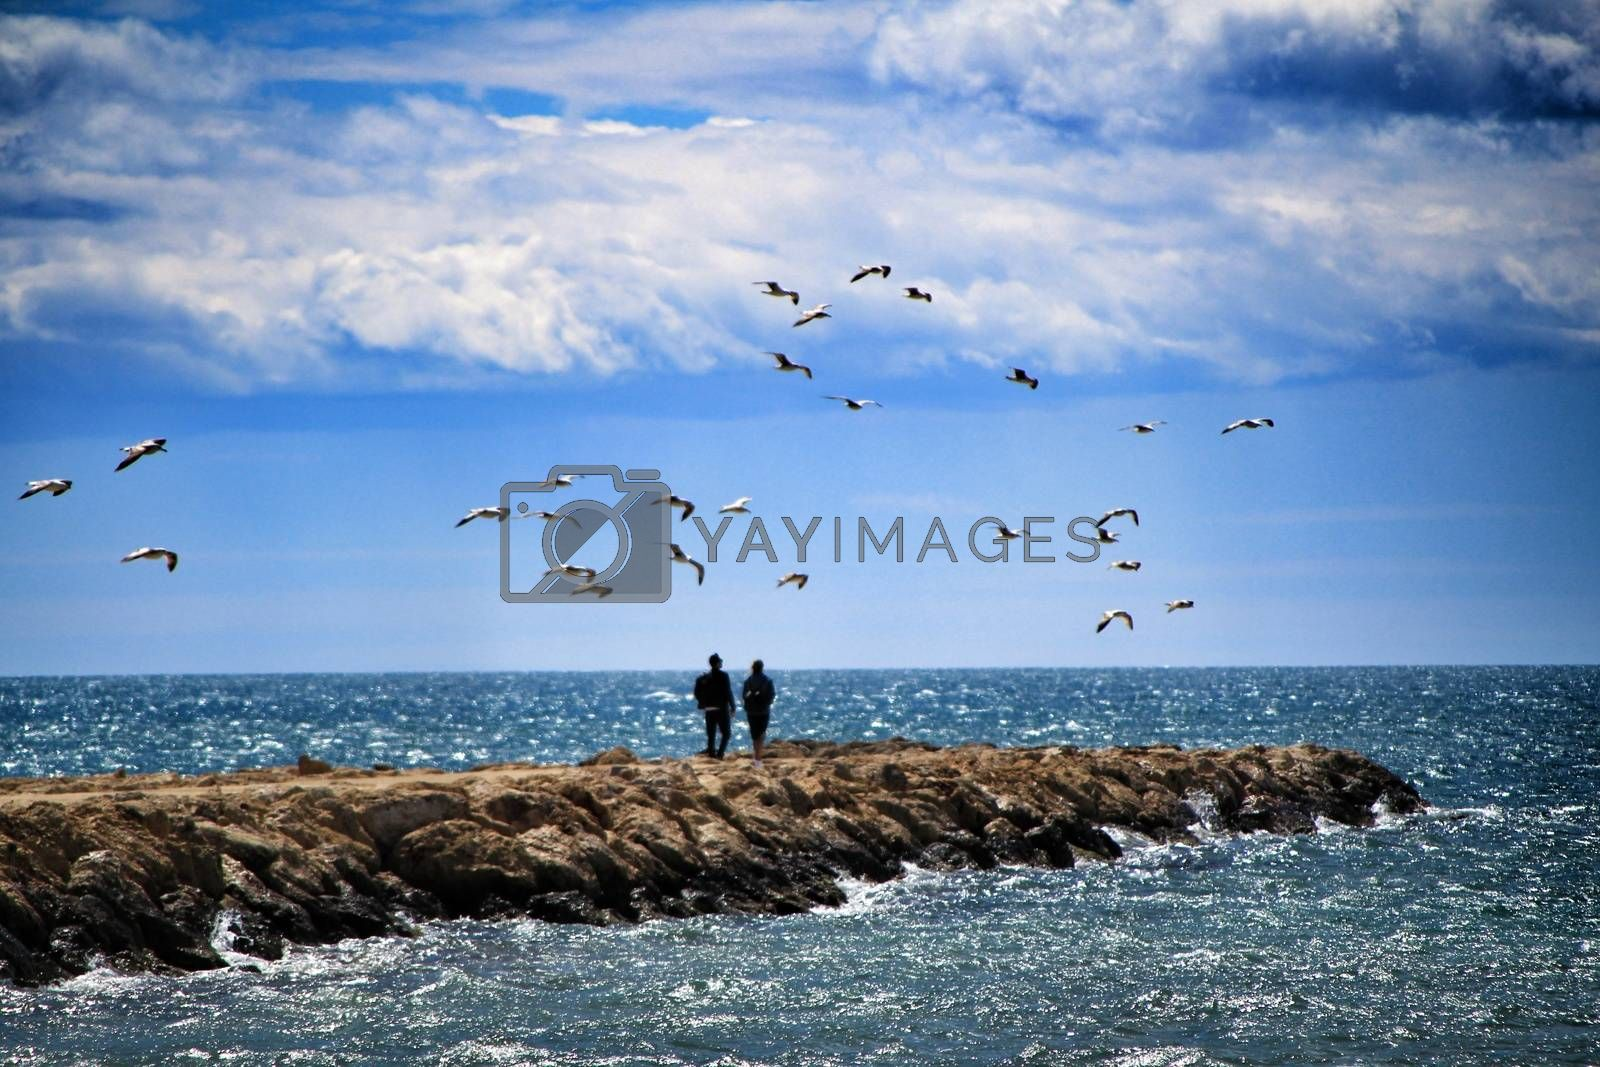 Walking day surrounded by seagulls on a breakwater under the sun in Santa Pola, Spain